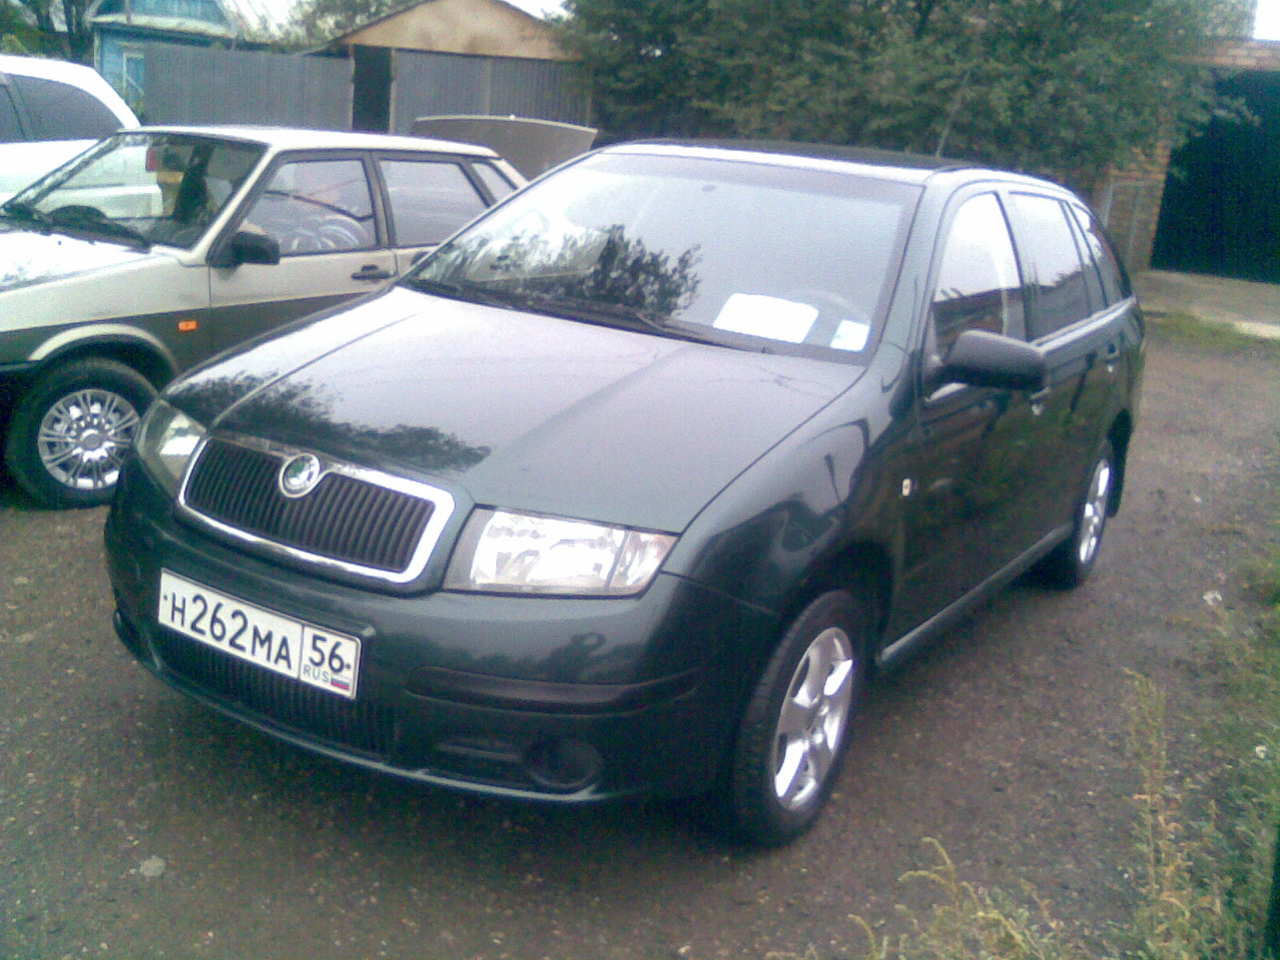 2006 skoda fabia pictures gasoline ff manual for sale. Black Bedroom Furniture Sets. Home Design Ideas